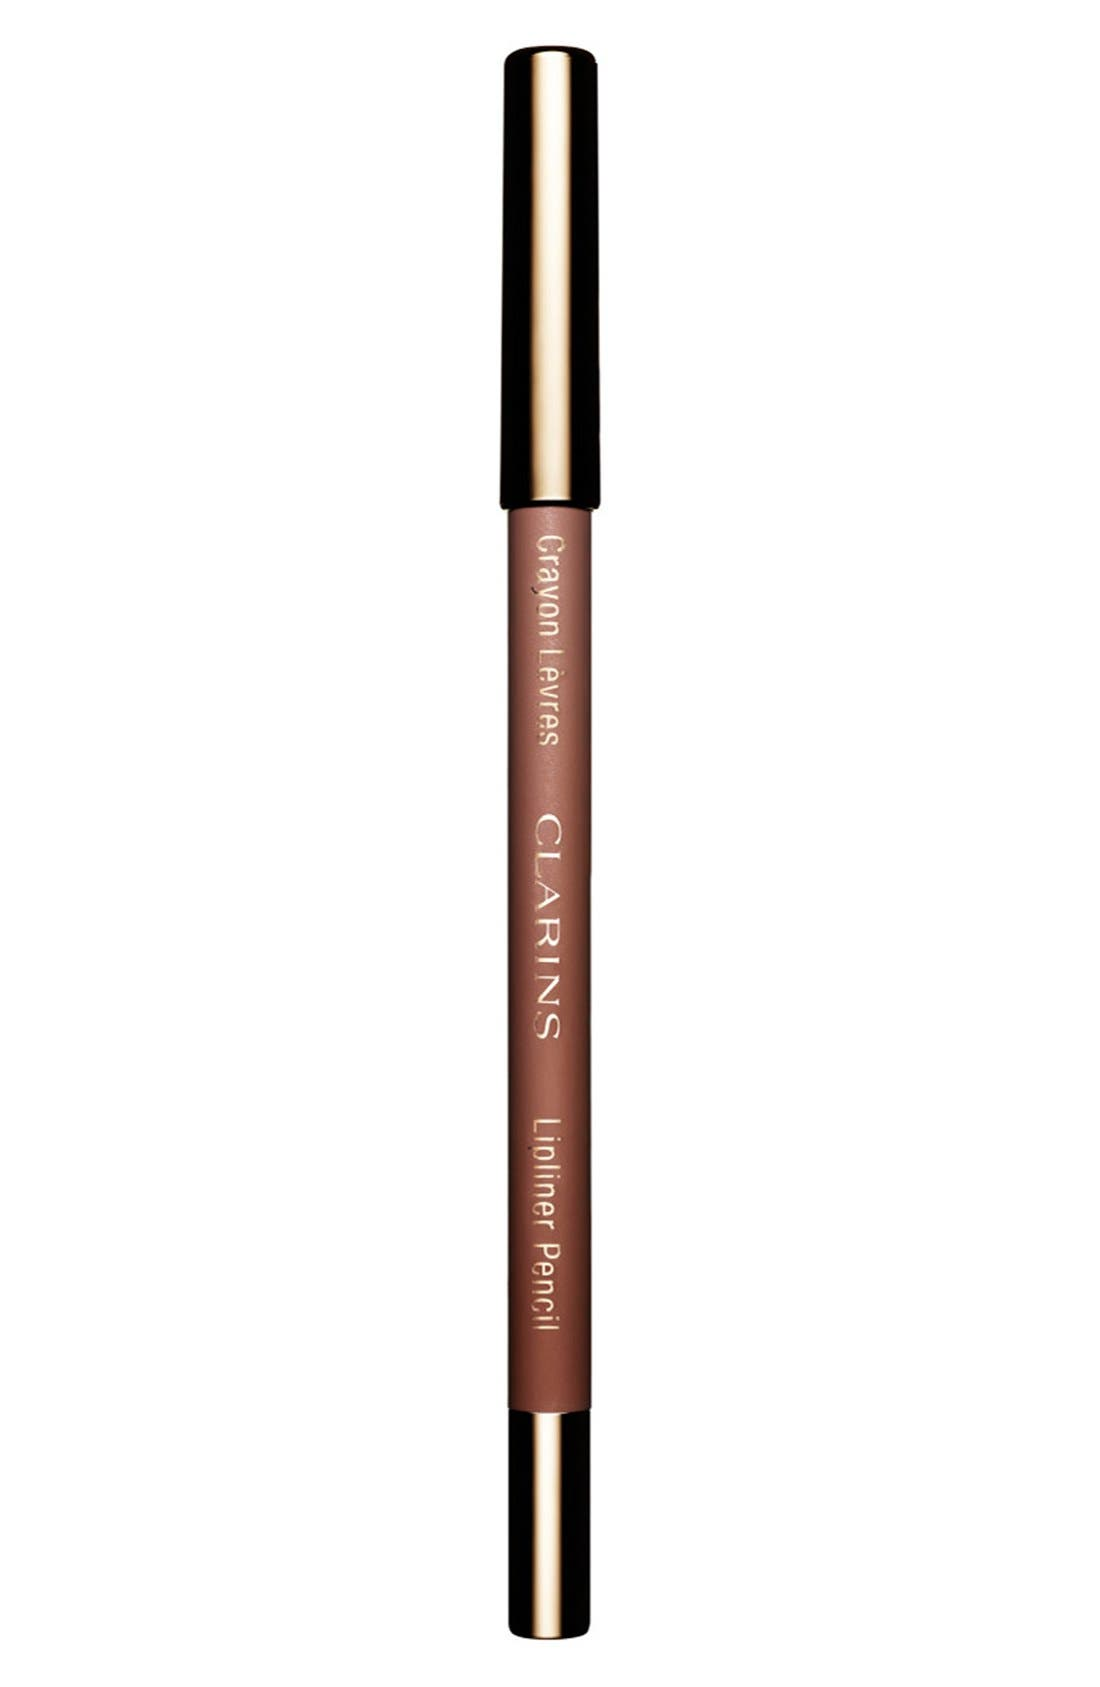 Lip Pencil,                             Main thumbnail 1, color,                             01 NUDE FAIR